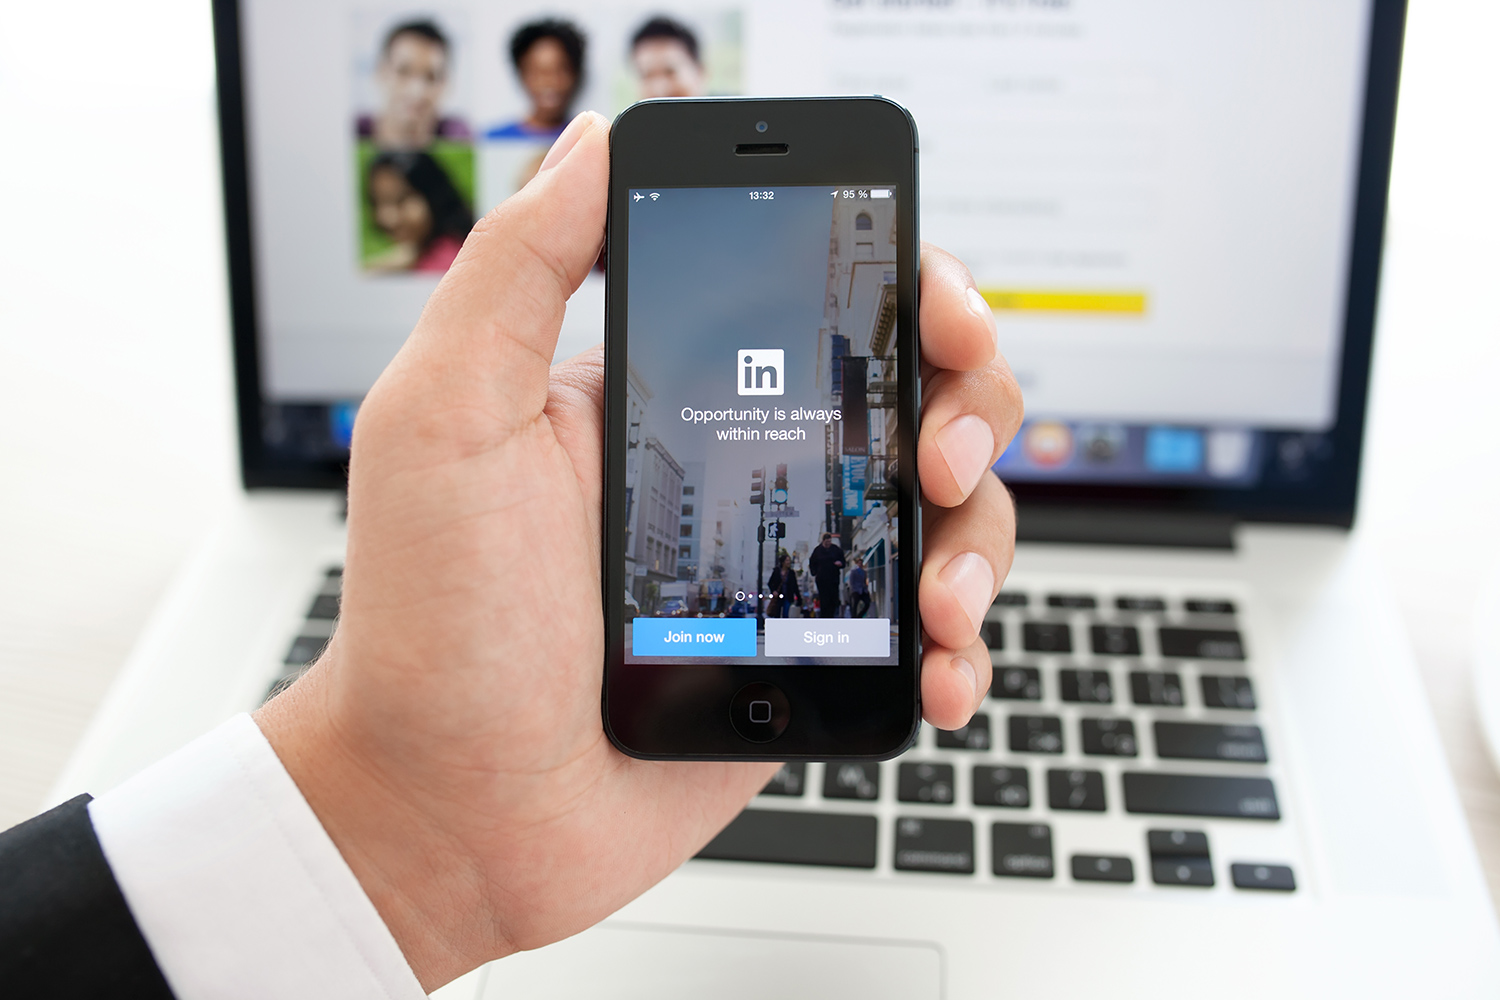 linkedin now lets you work out alerting your boss linkedin open candidates